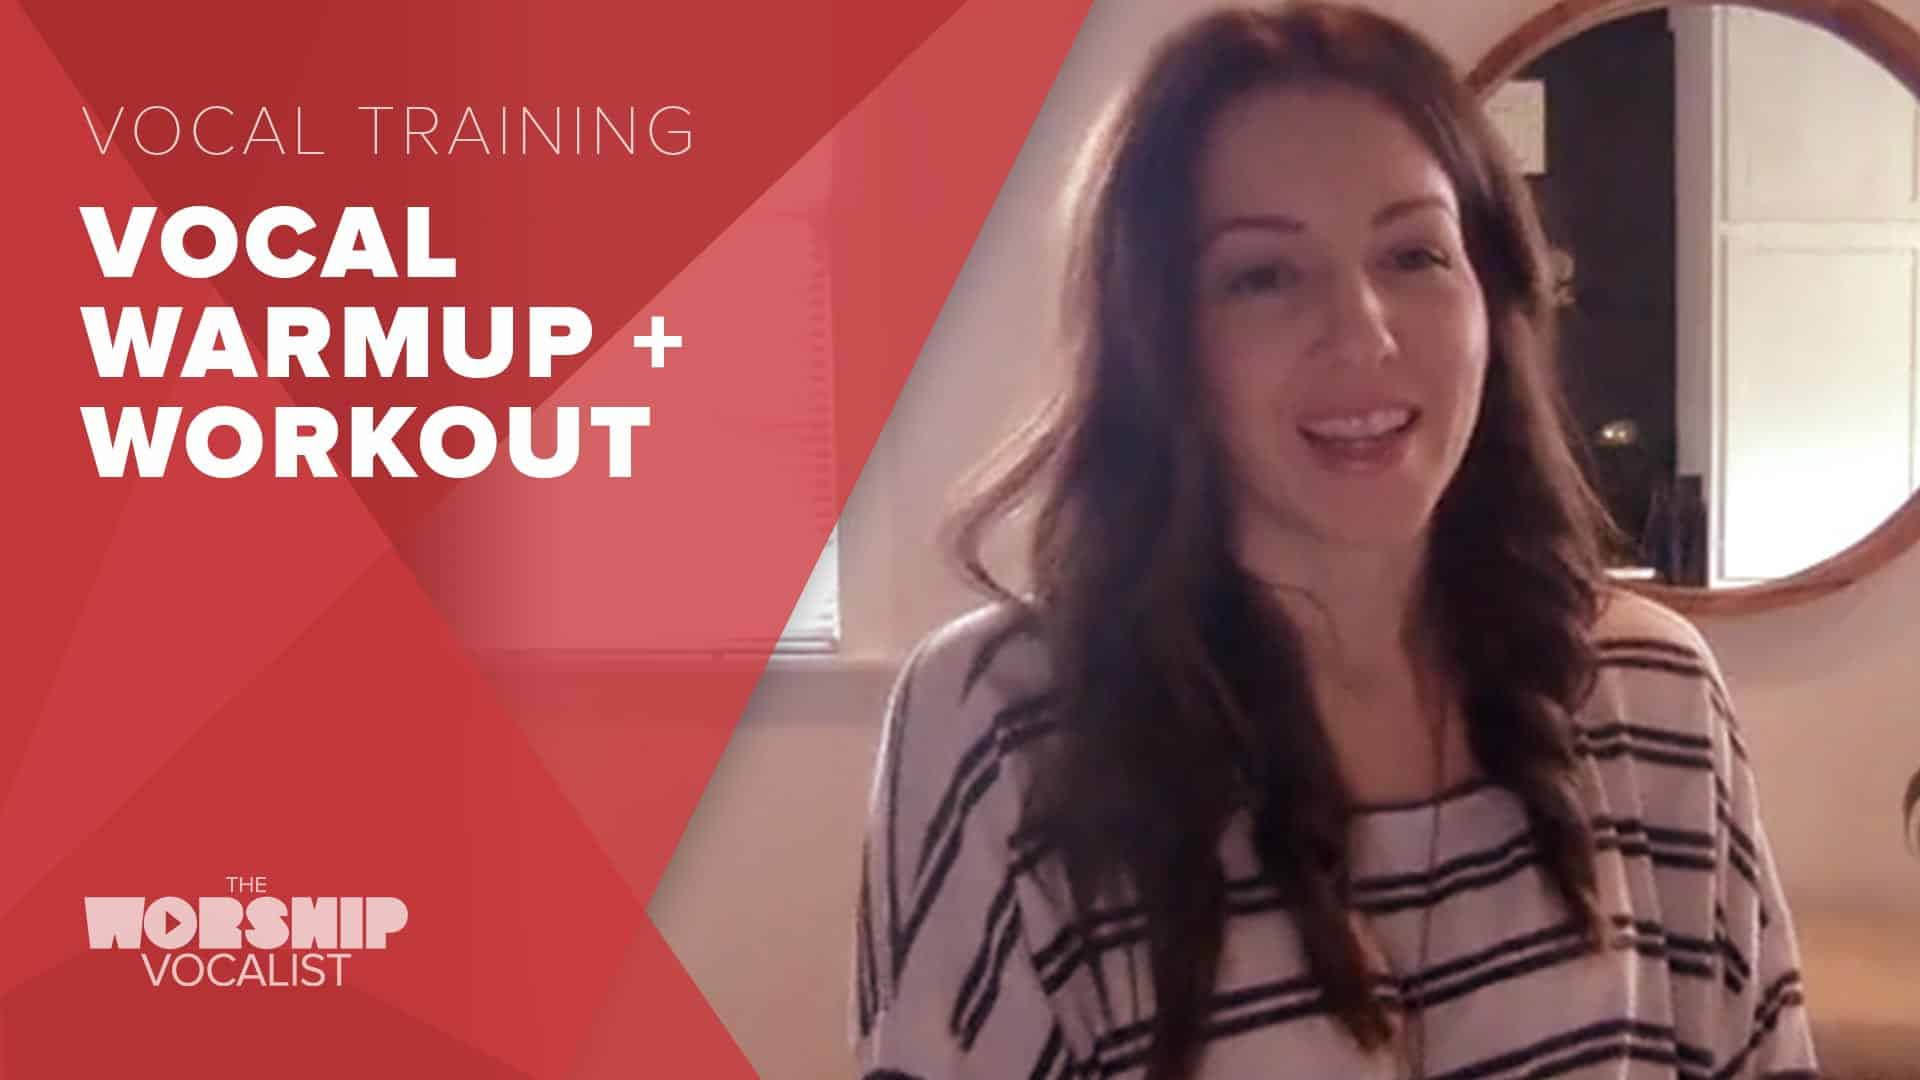 Vocal Warmup + Workout with Shelby Rollins